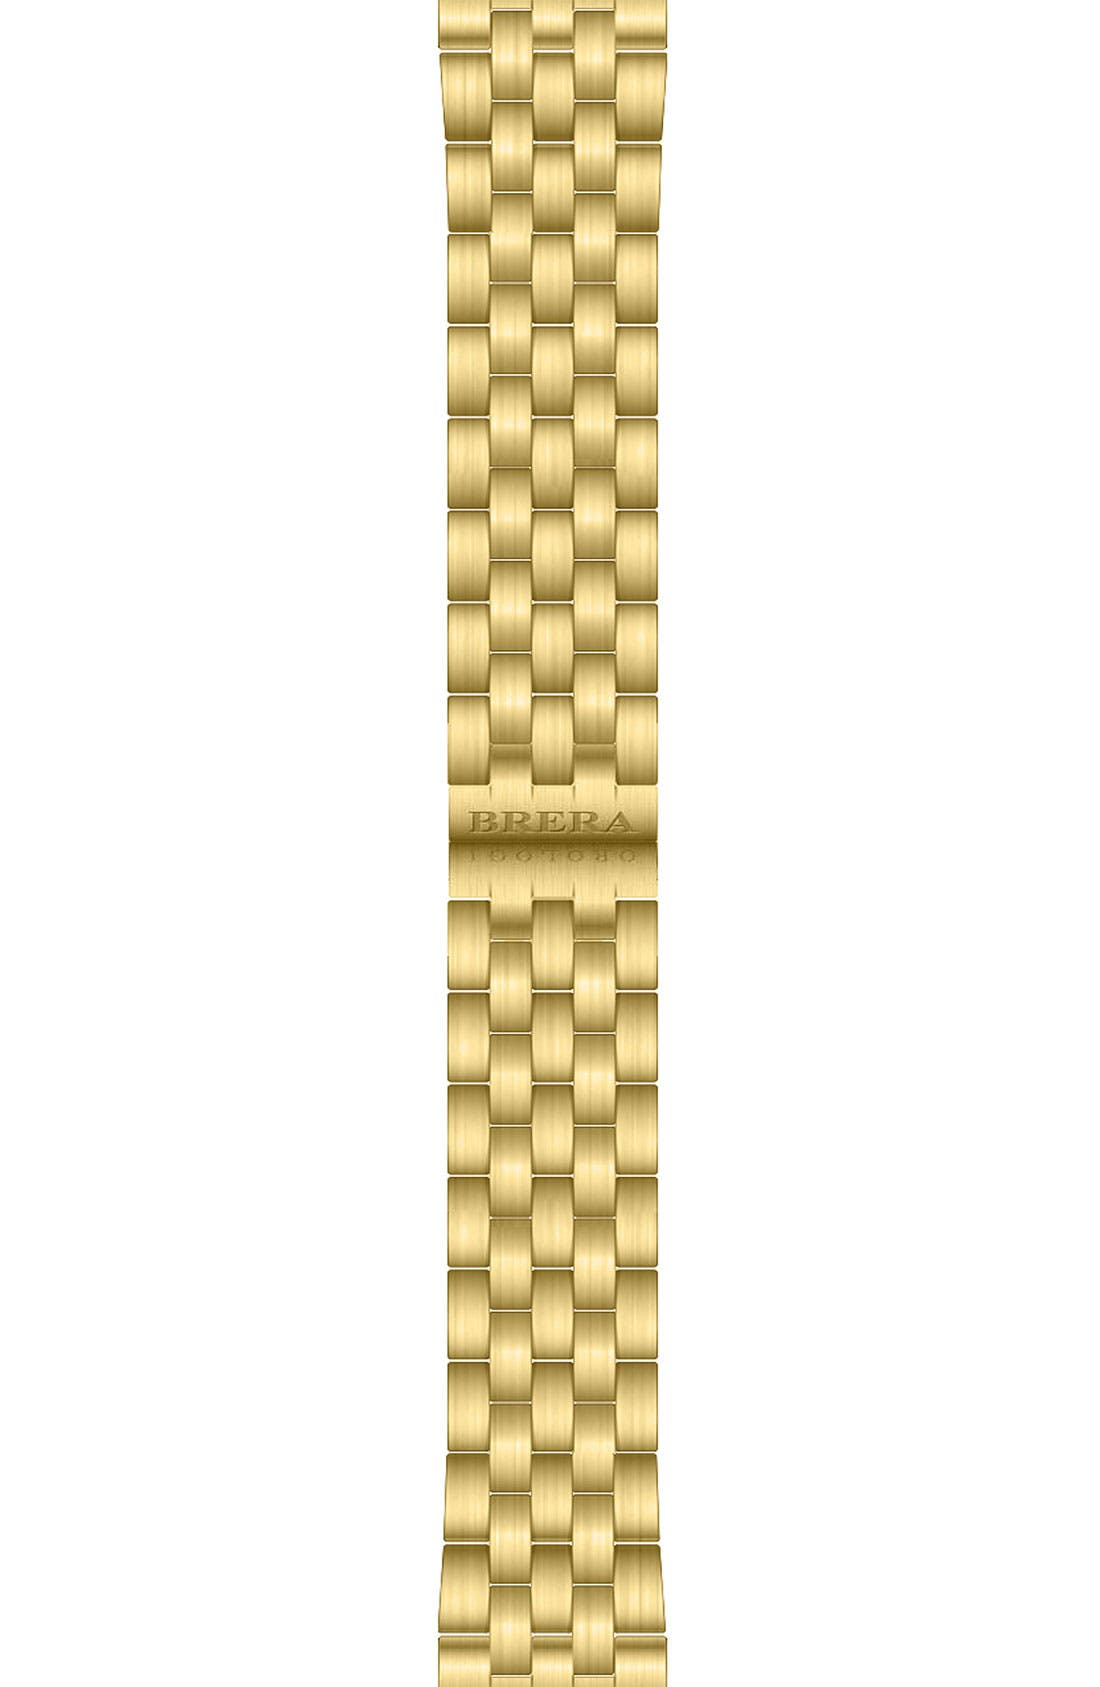 Main Image - Brera 'Valentina' 22mm Gold Watch Bracelet